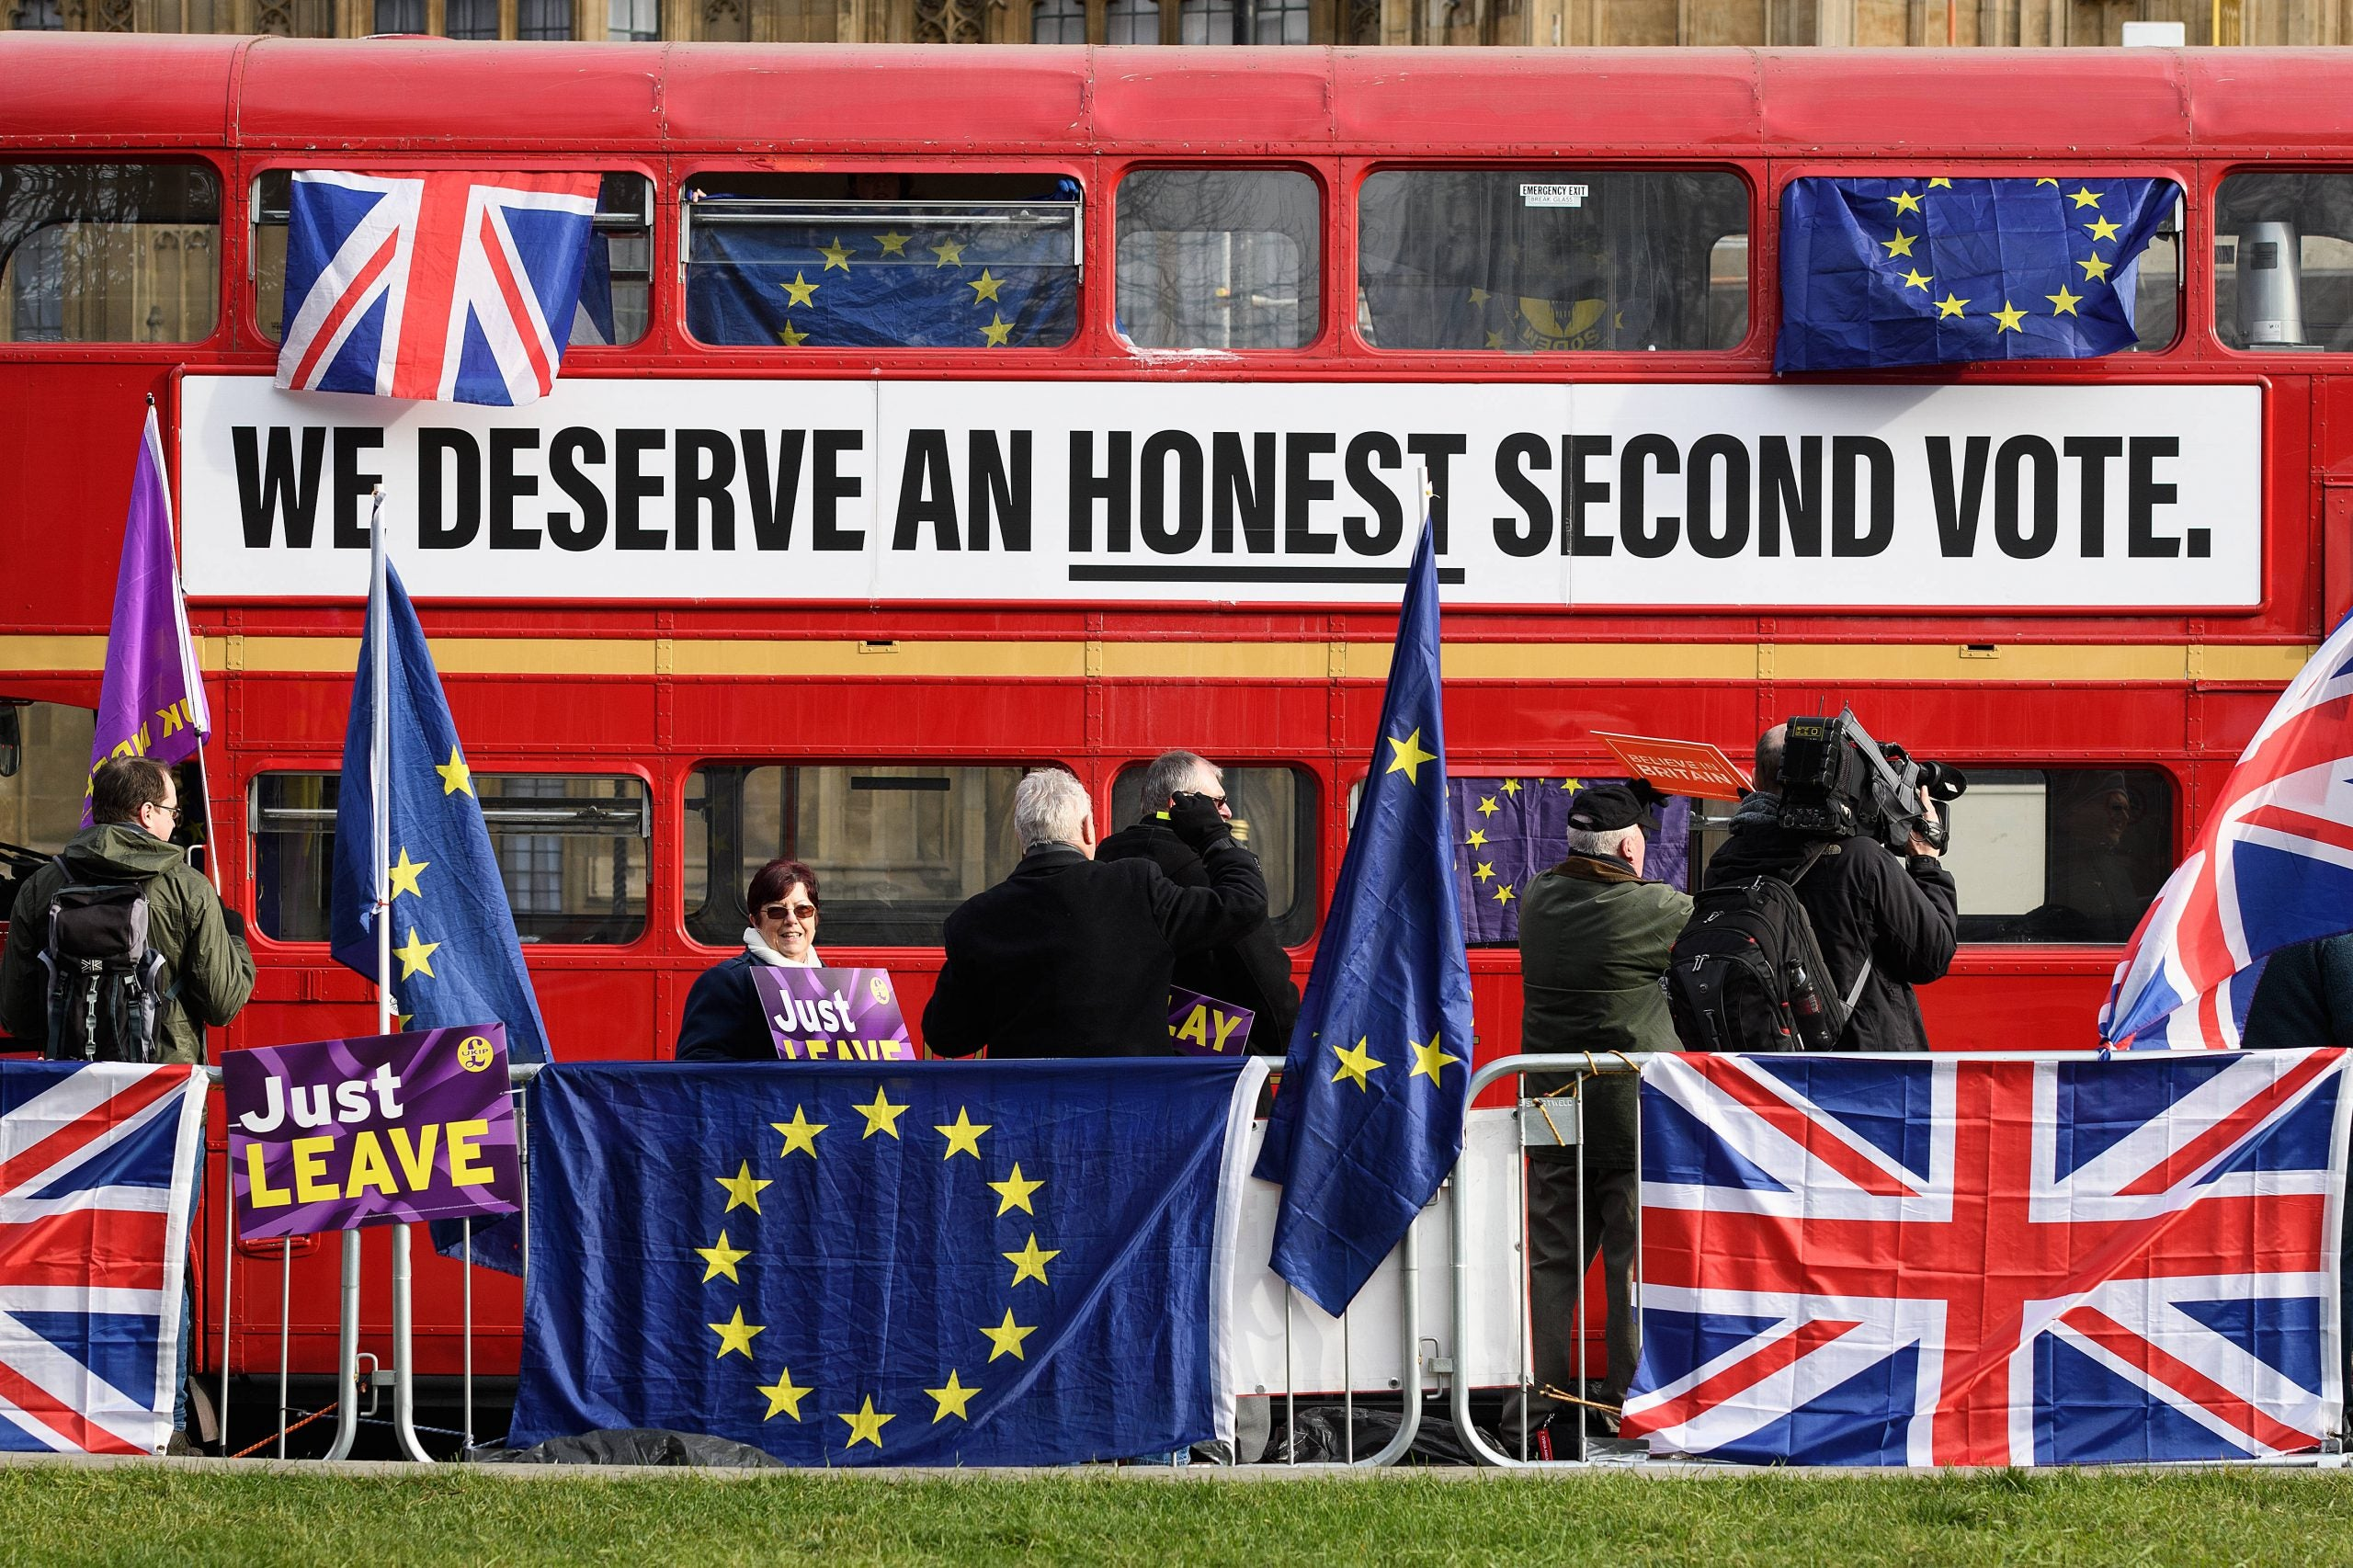 The left-wing case for a second referendum